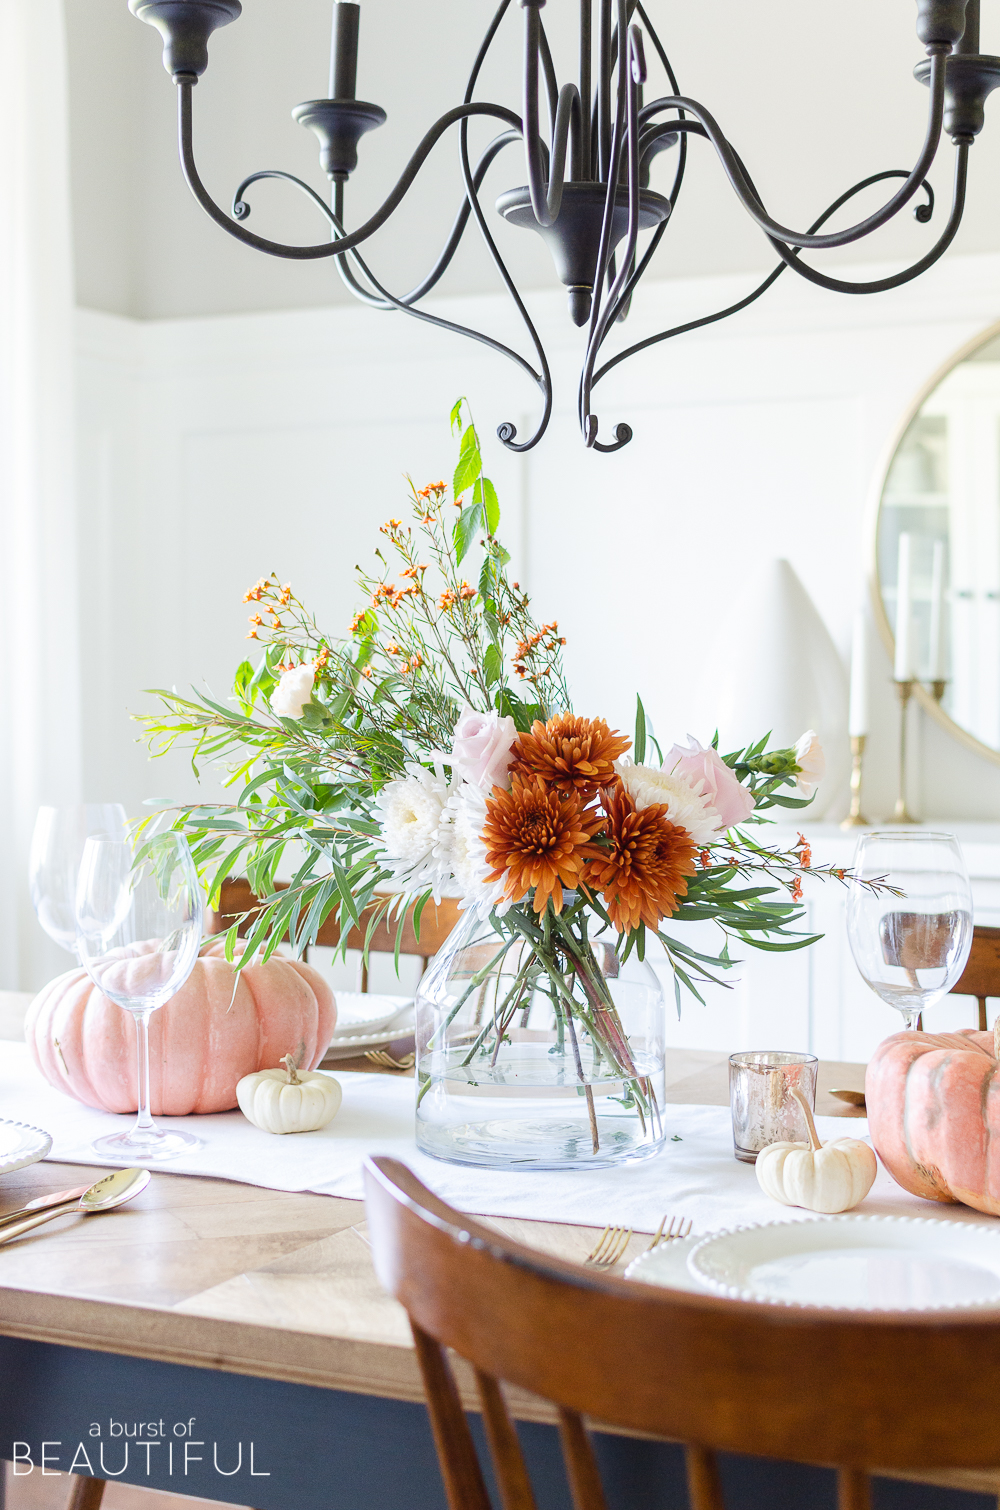 Find inspiration for entertaining this fall season with 16 festive fall tablescapes, including a simple fall table setting in traditional autumn colors.